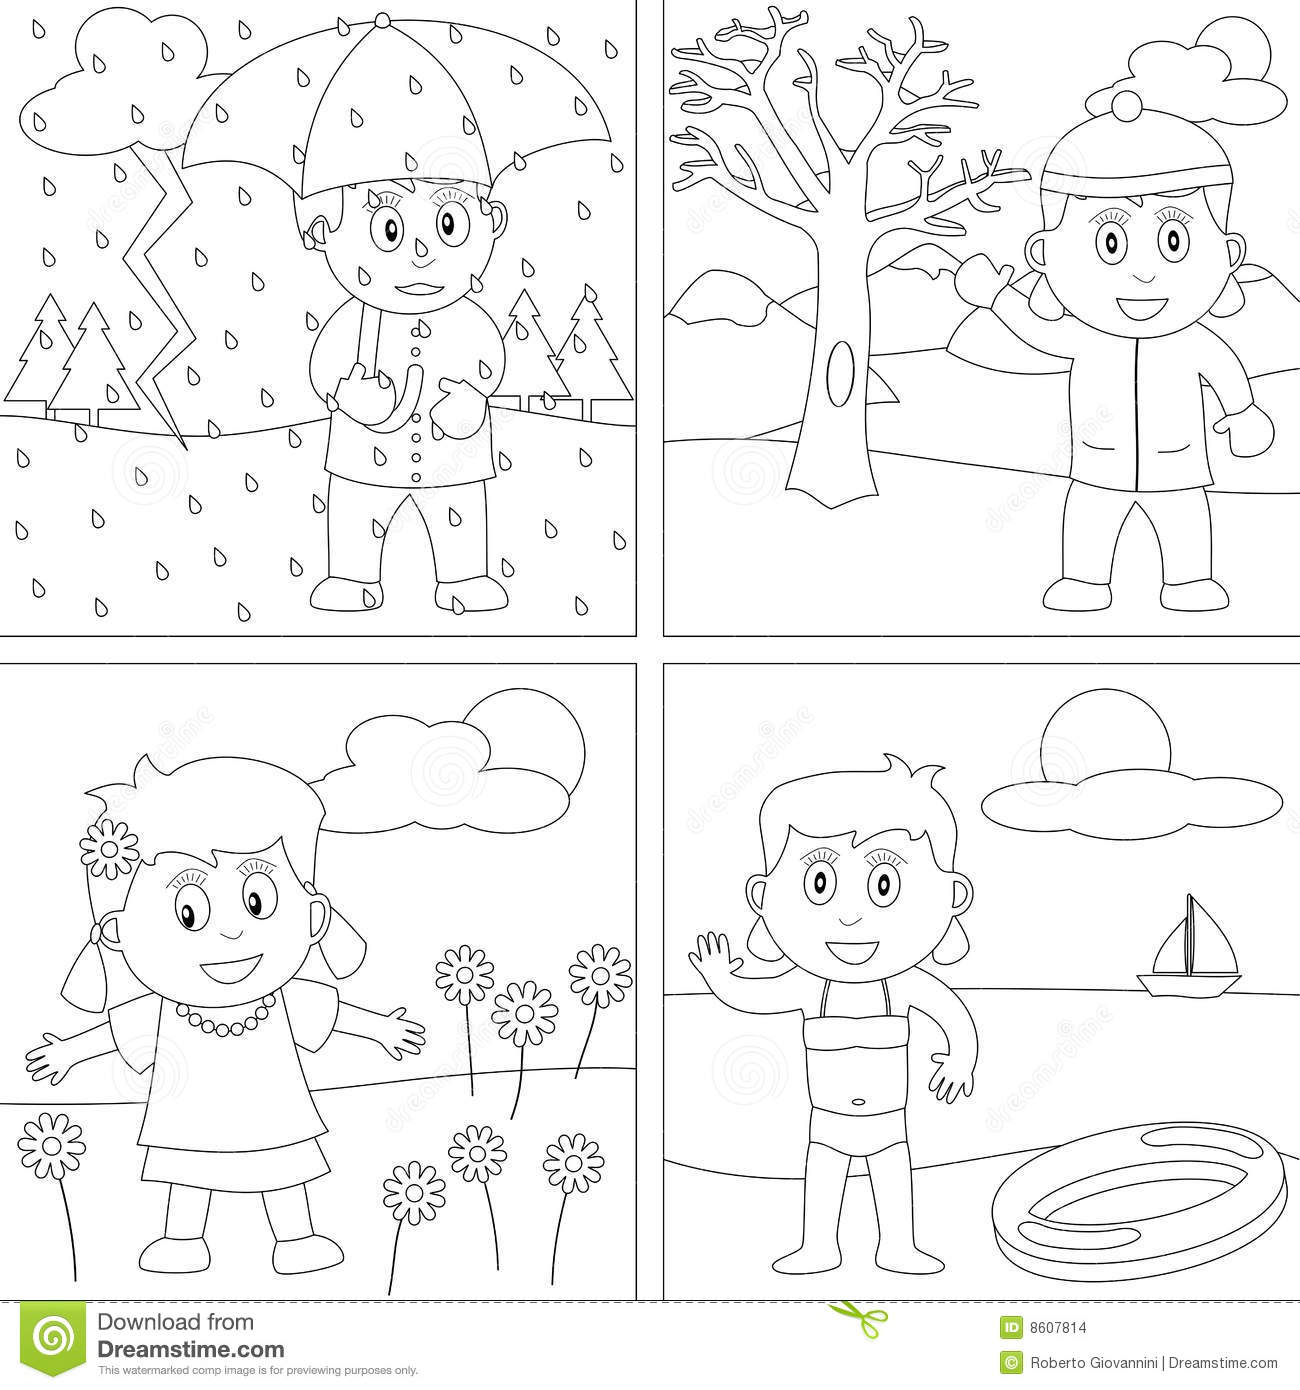 coloring pictures for grade 4 4th grade coloring pages free download on clipartmag grade 4 pictures coloring for